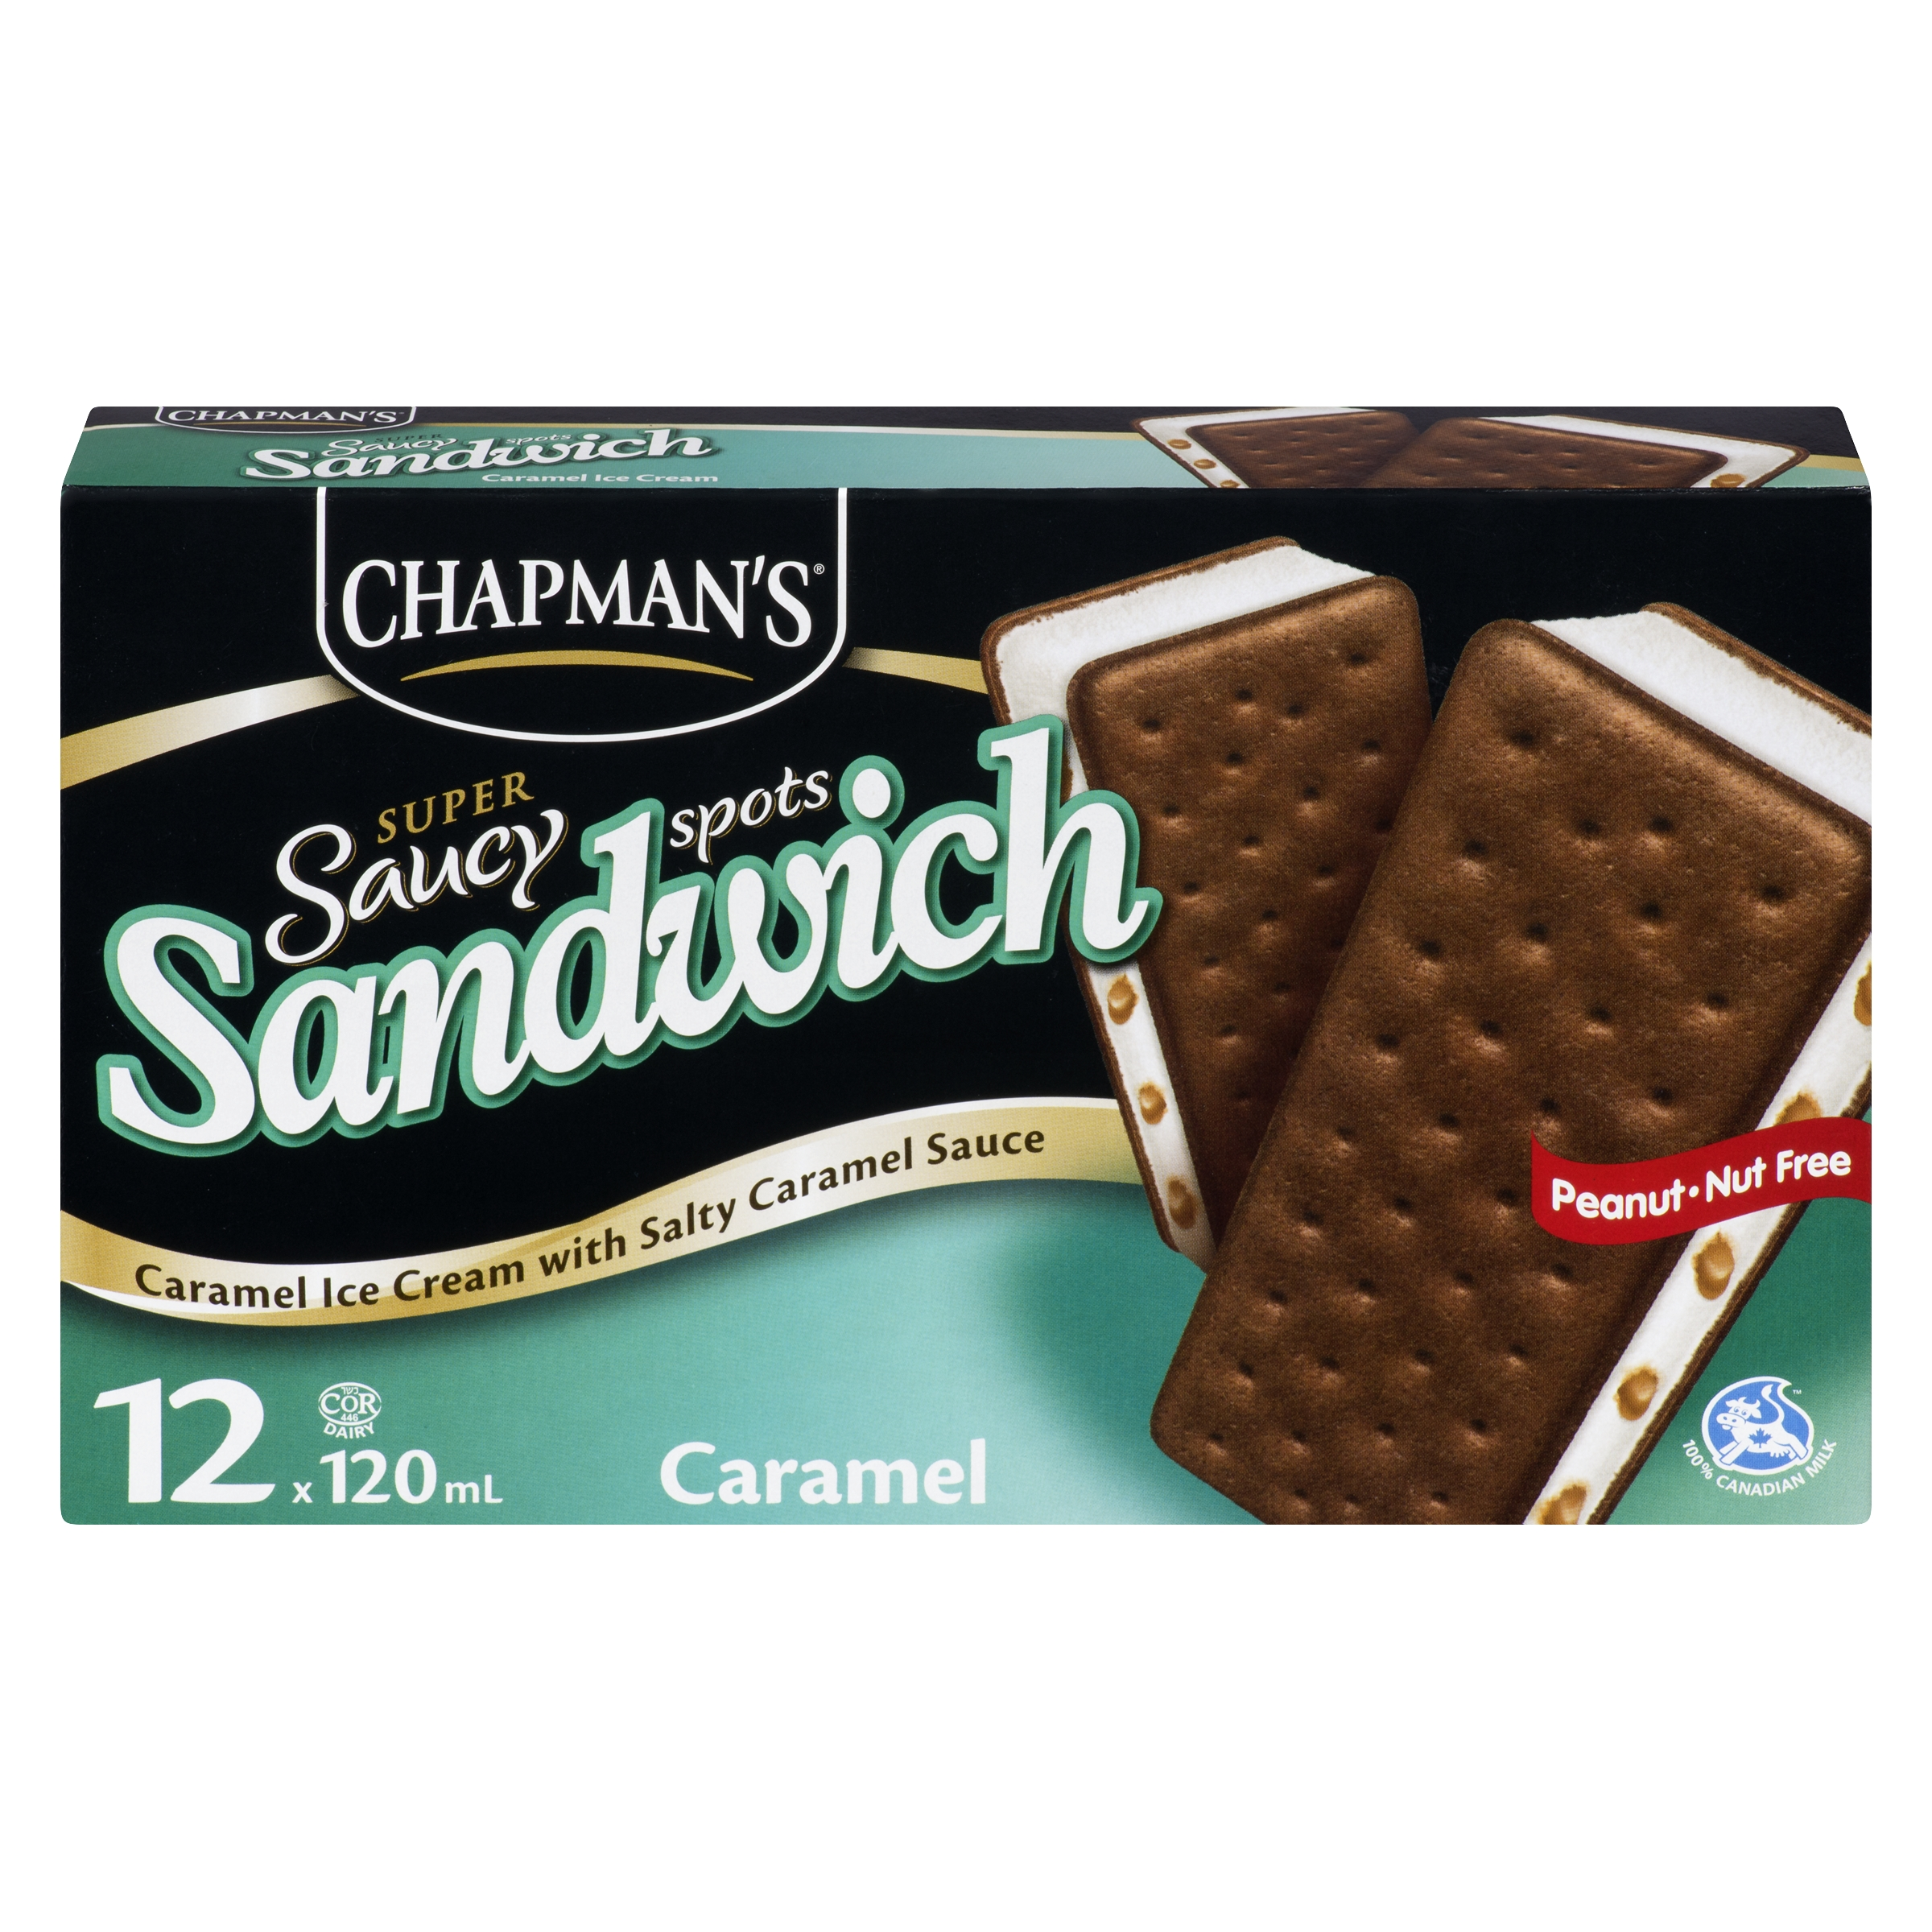 chapmans ice cream Proudly canadian po box 379, 100 chapman's crescent markdale, ontario canada n0c 1h0 phone: (519) 986-3131 toll free: (800) 265-9110 fax: (519) 986-4280.